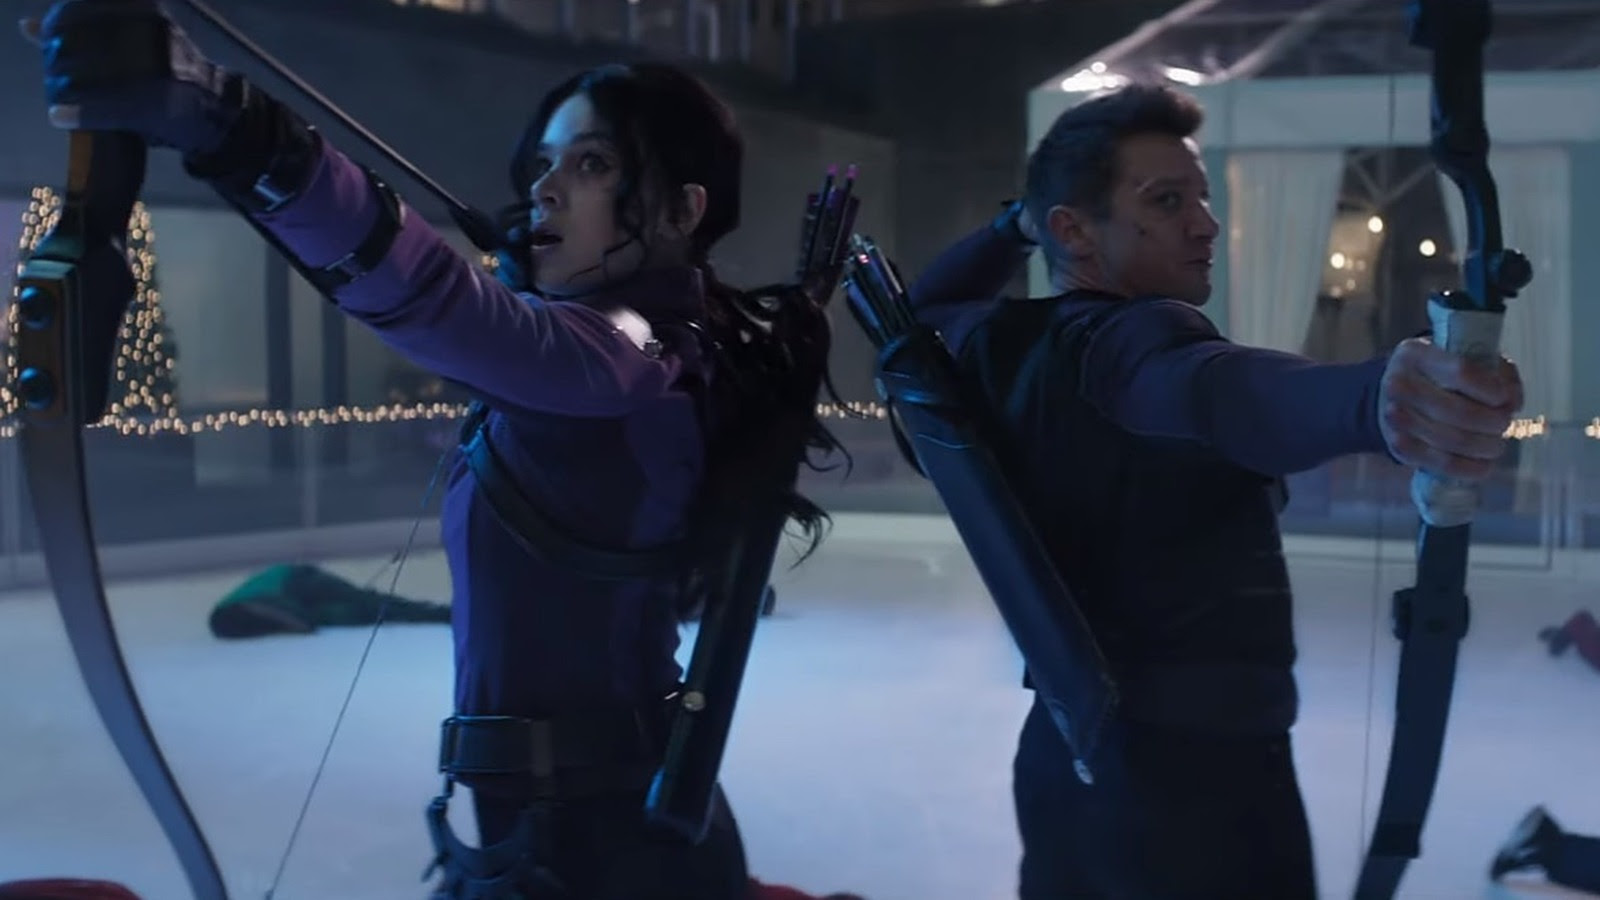 Hawkeye Will Premiere With Two Episodes, Watch A Teaser With New Footage